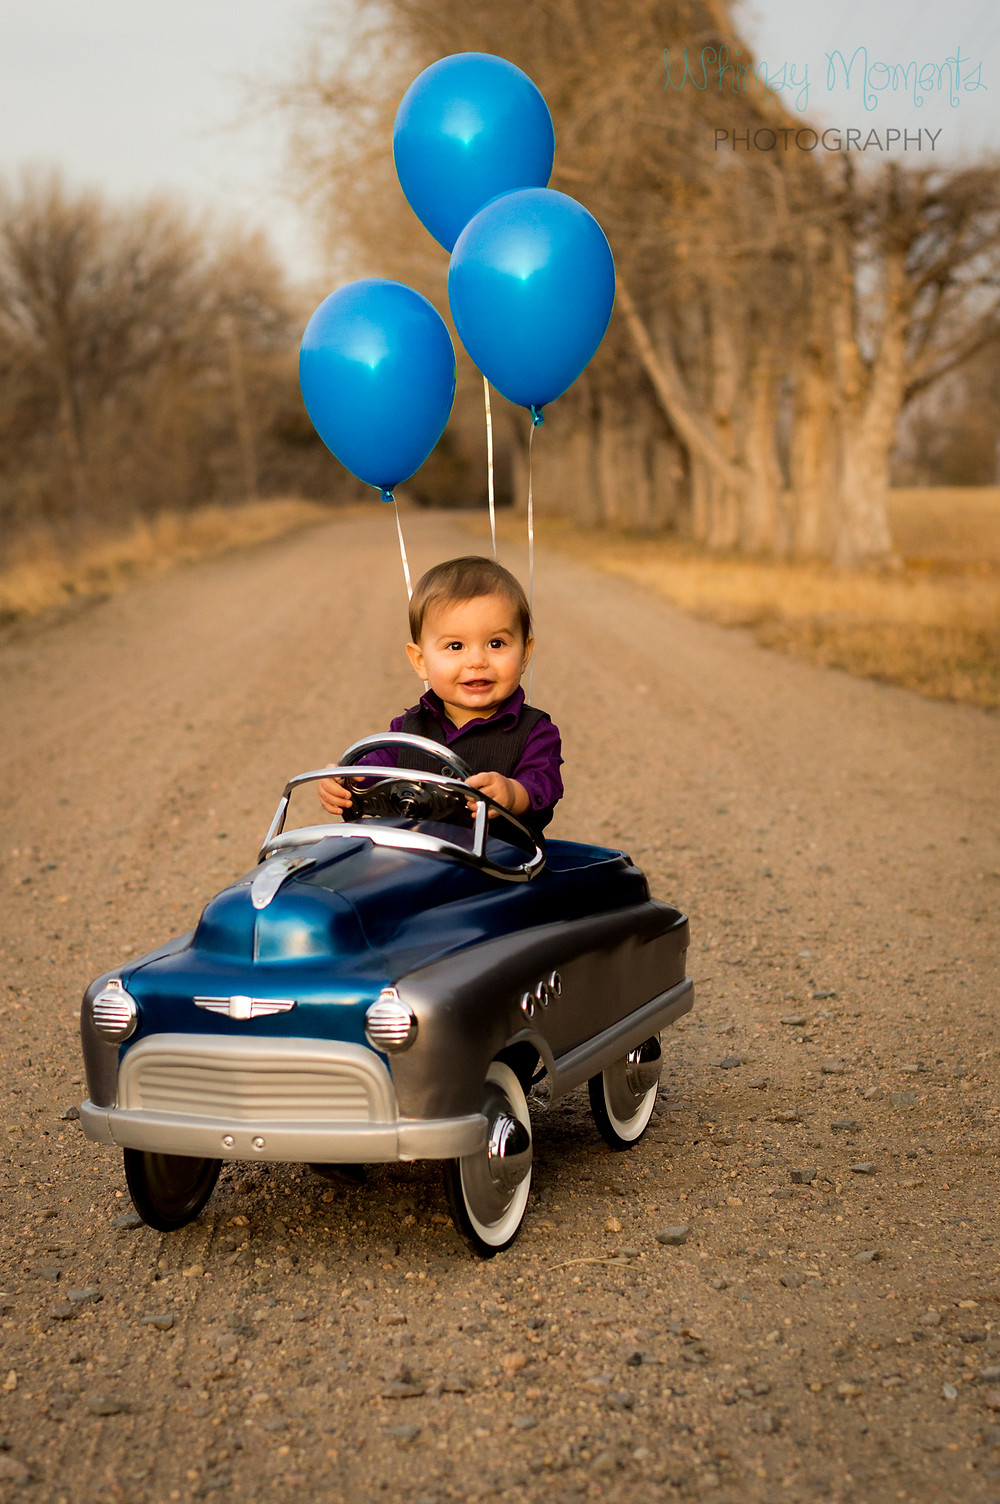 One year boy in pedal car with blue balloons smiling